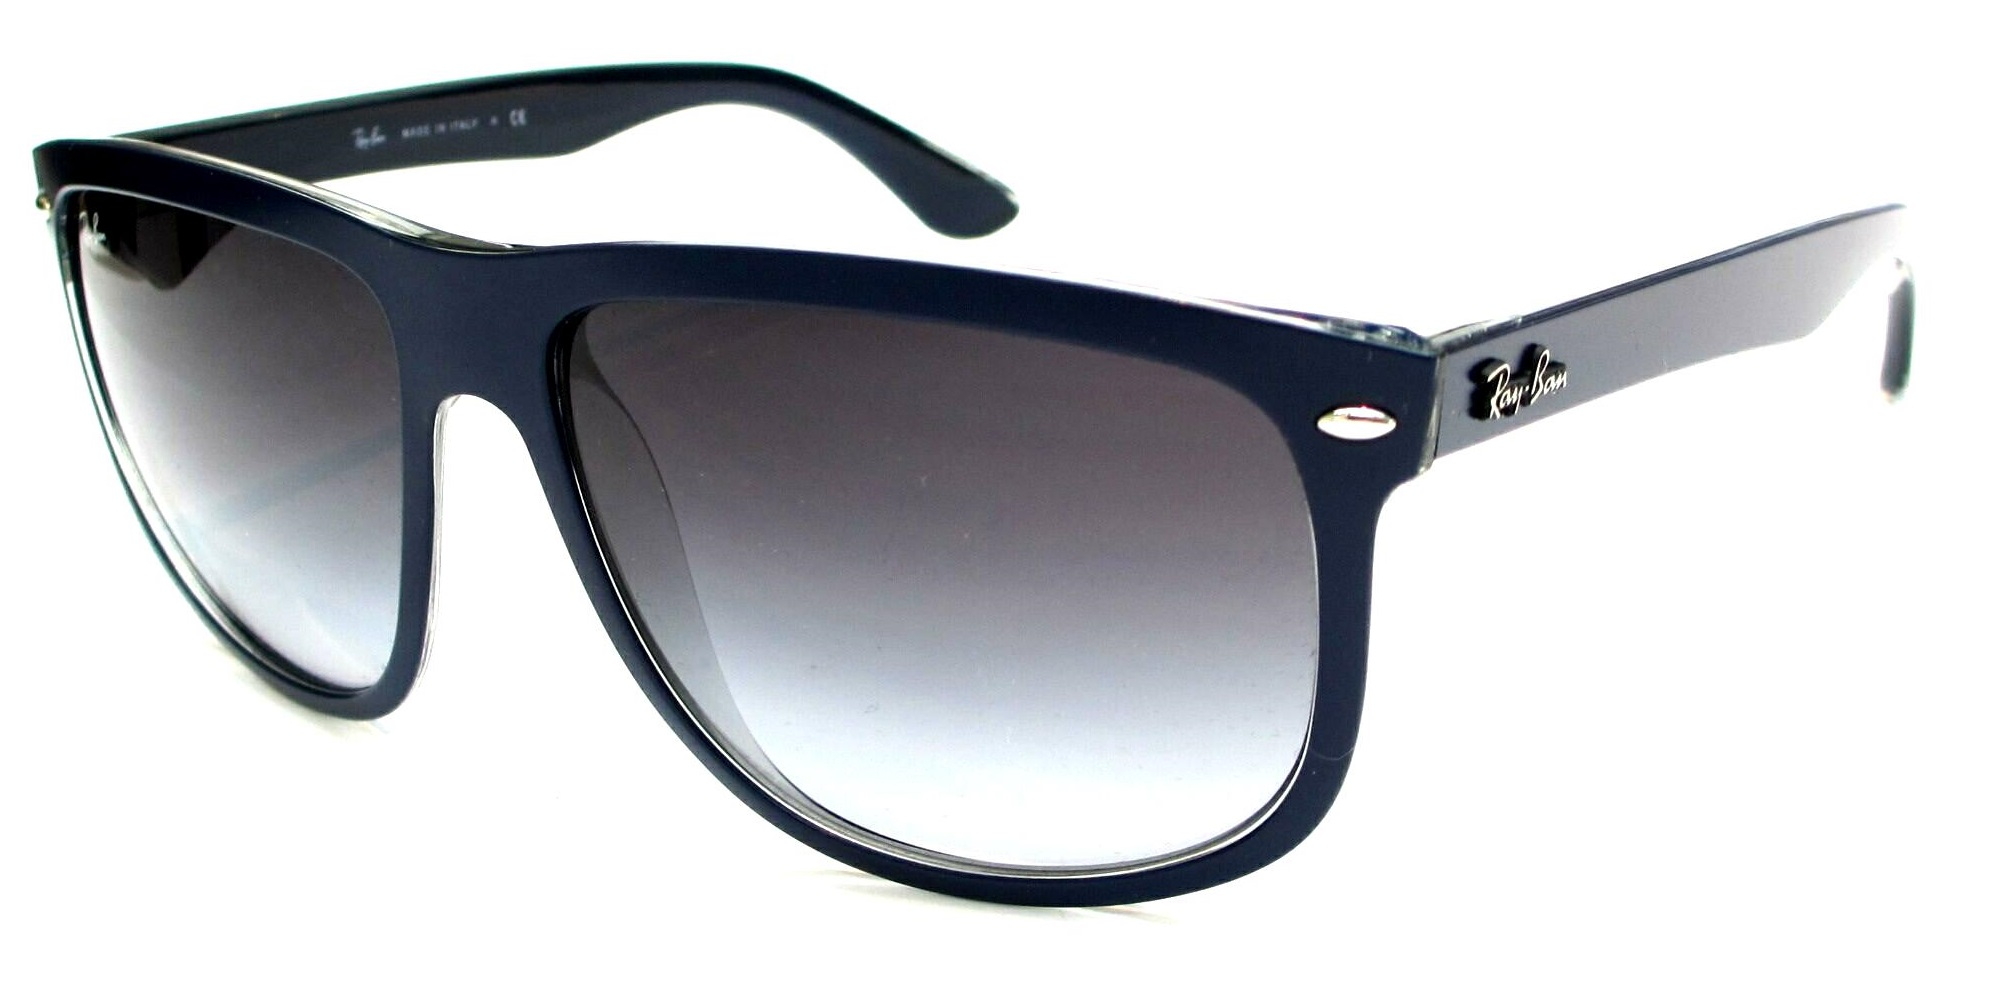 5b64bbd6e8 Ray Ban Rb4147 60s Style « Heritage Malta